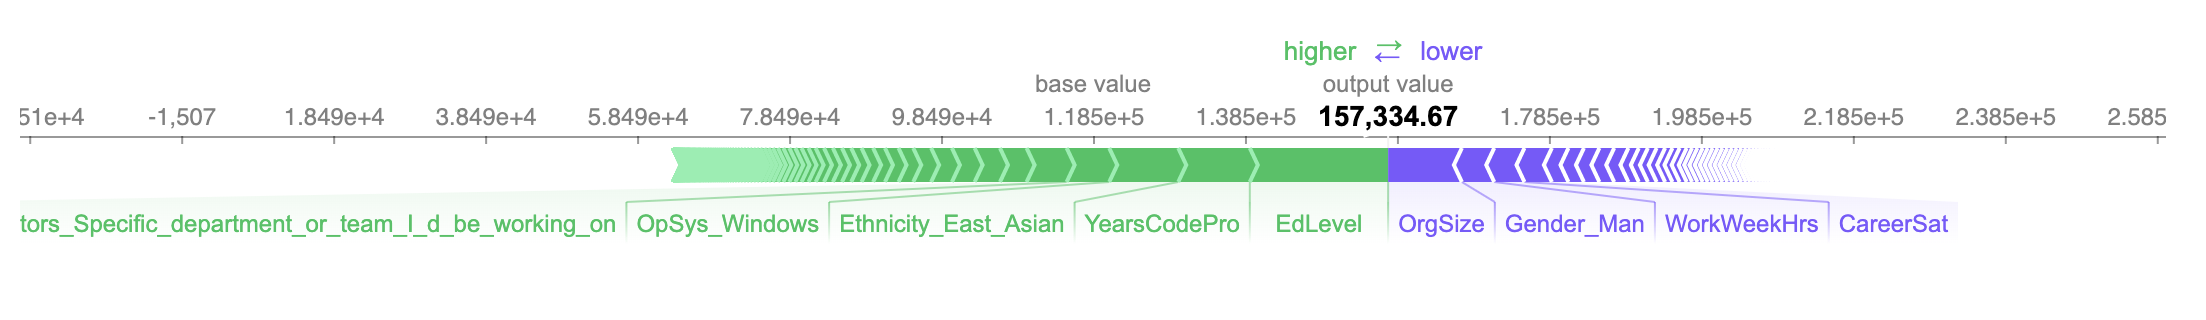 Using Python SHAP to visualize the explanation of predicted salary of one developer